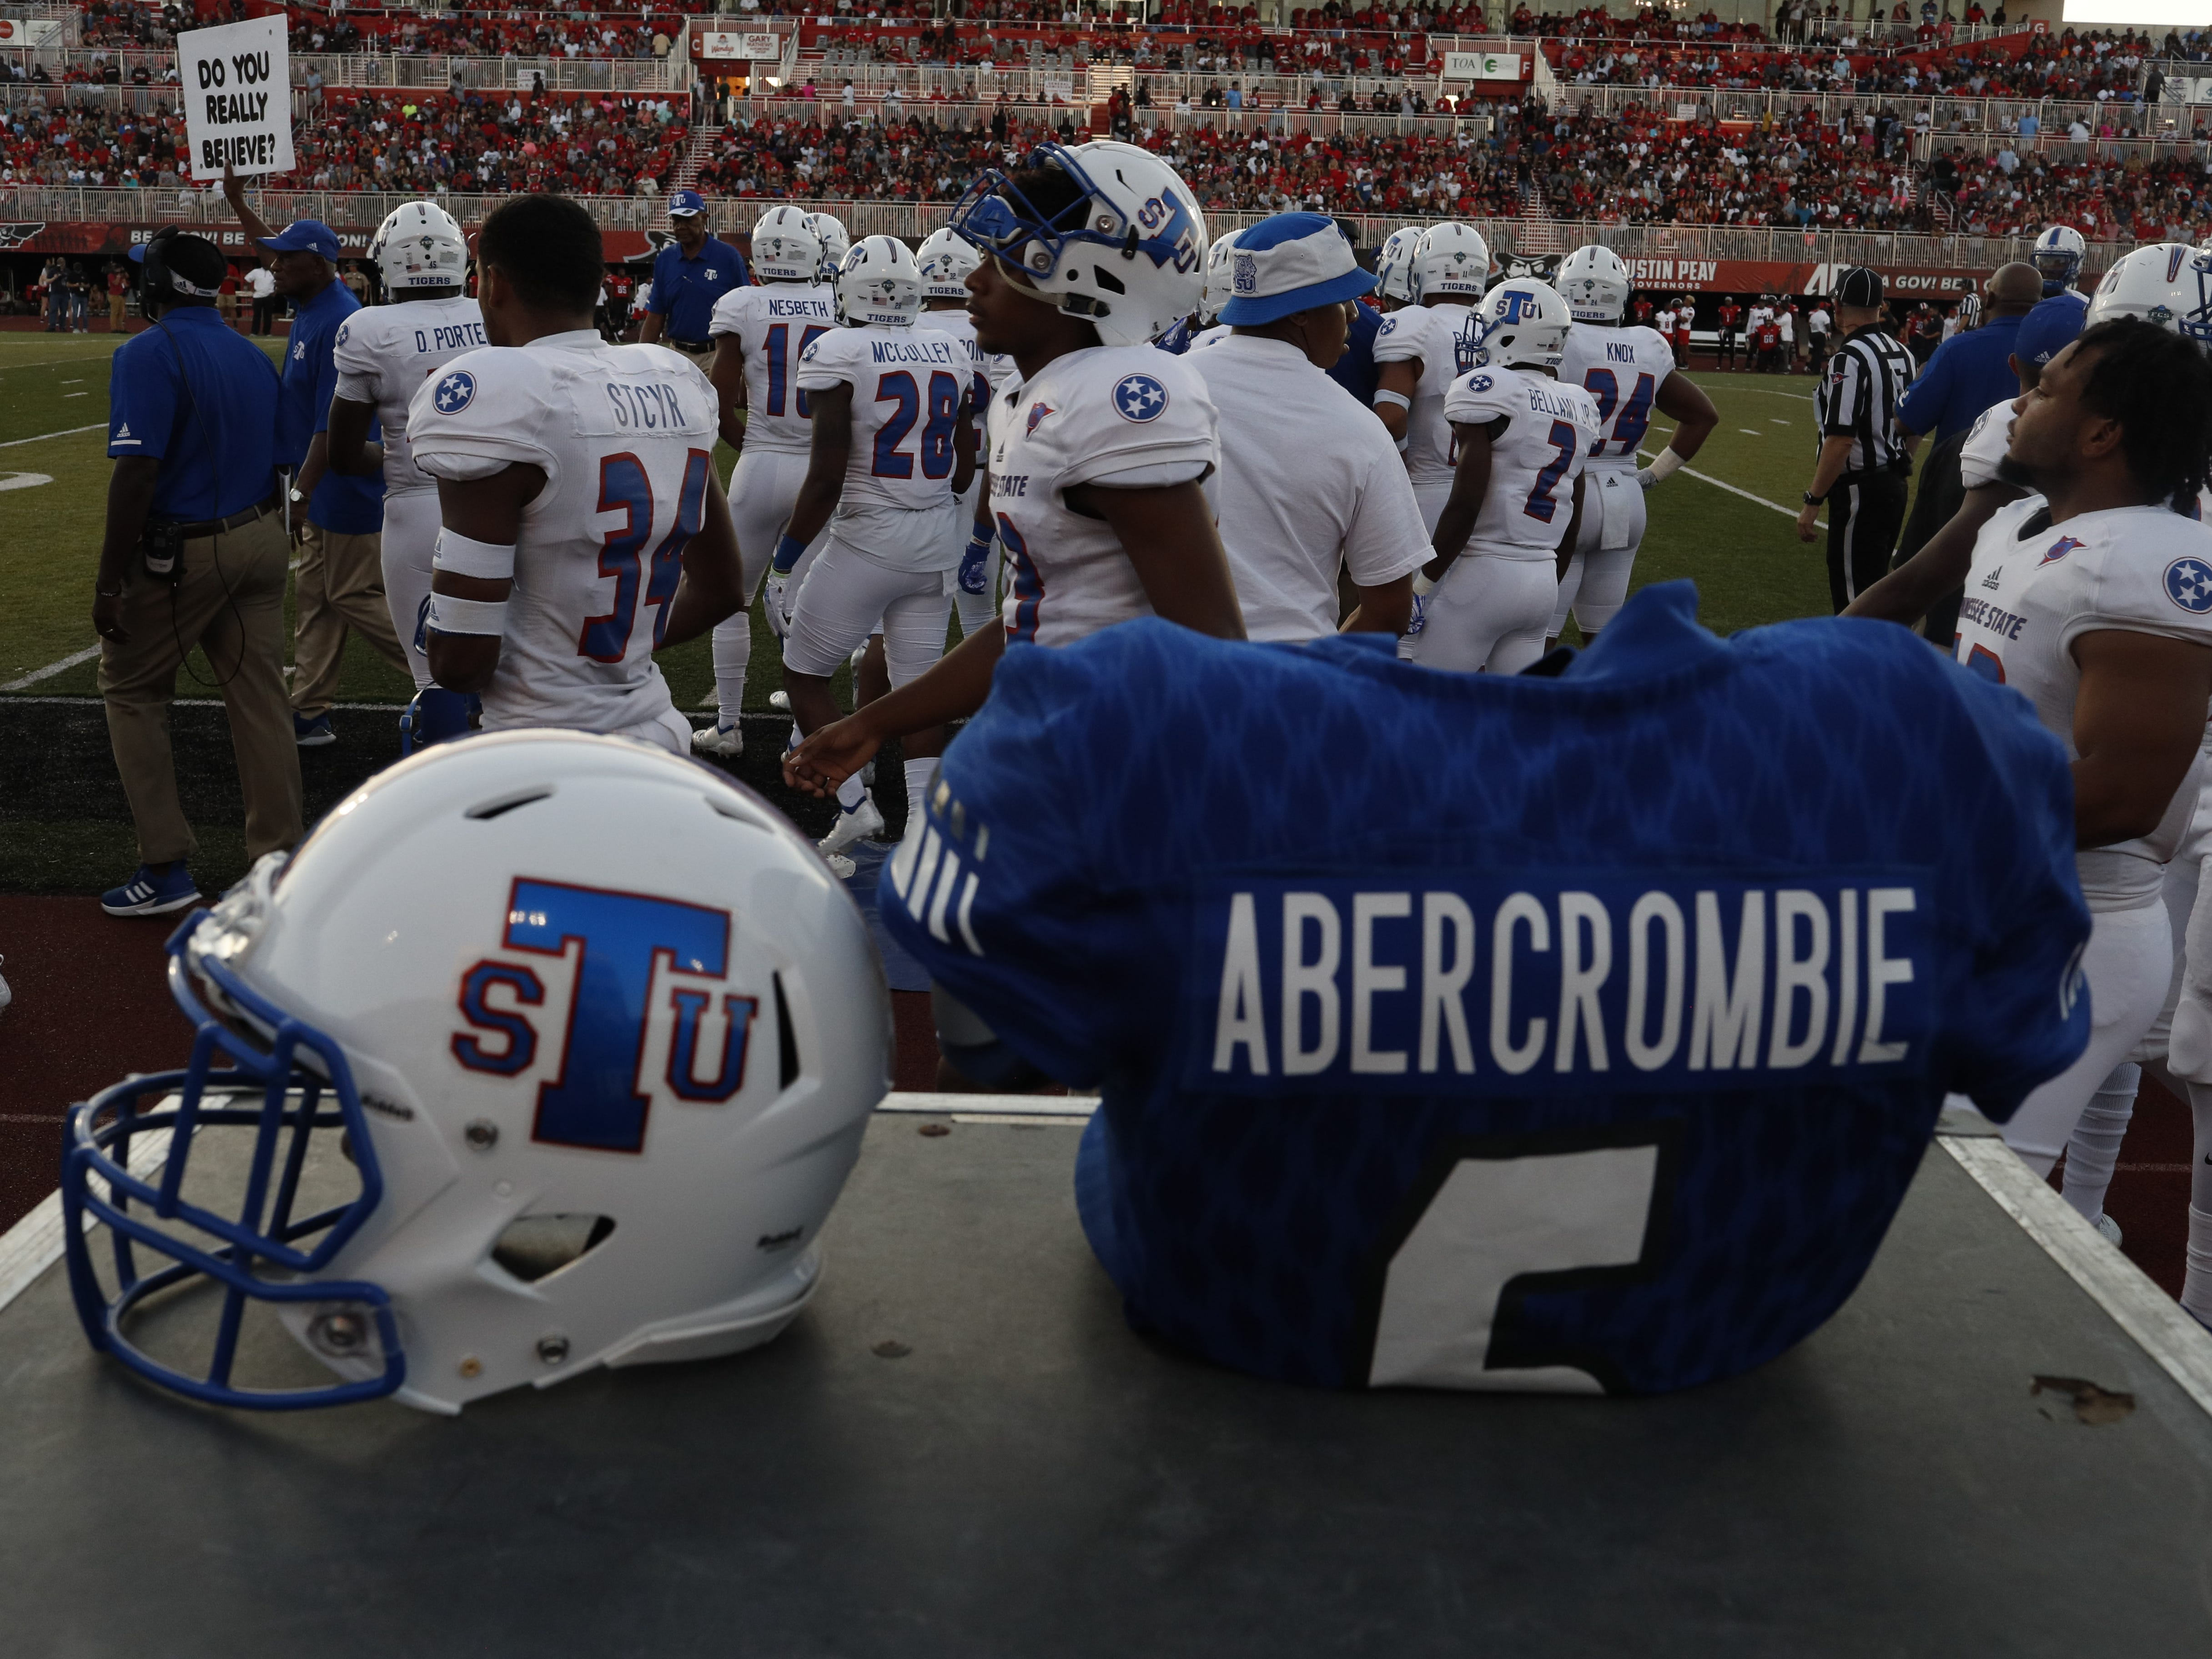 The jersey and shoulder pads of Tennessee State linebacker Christion Abercrombie rests on a equipment box on the sidelines before the Tigers' game at Austin Peay on Saturday, October 6, 2018.